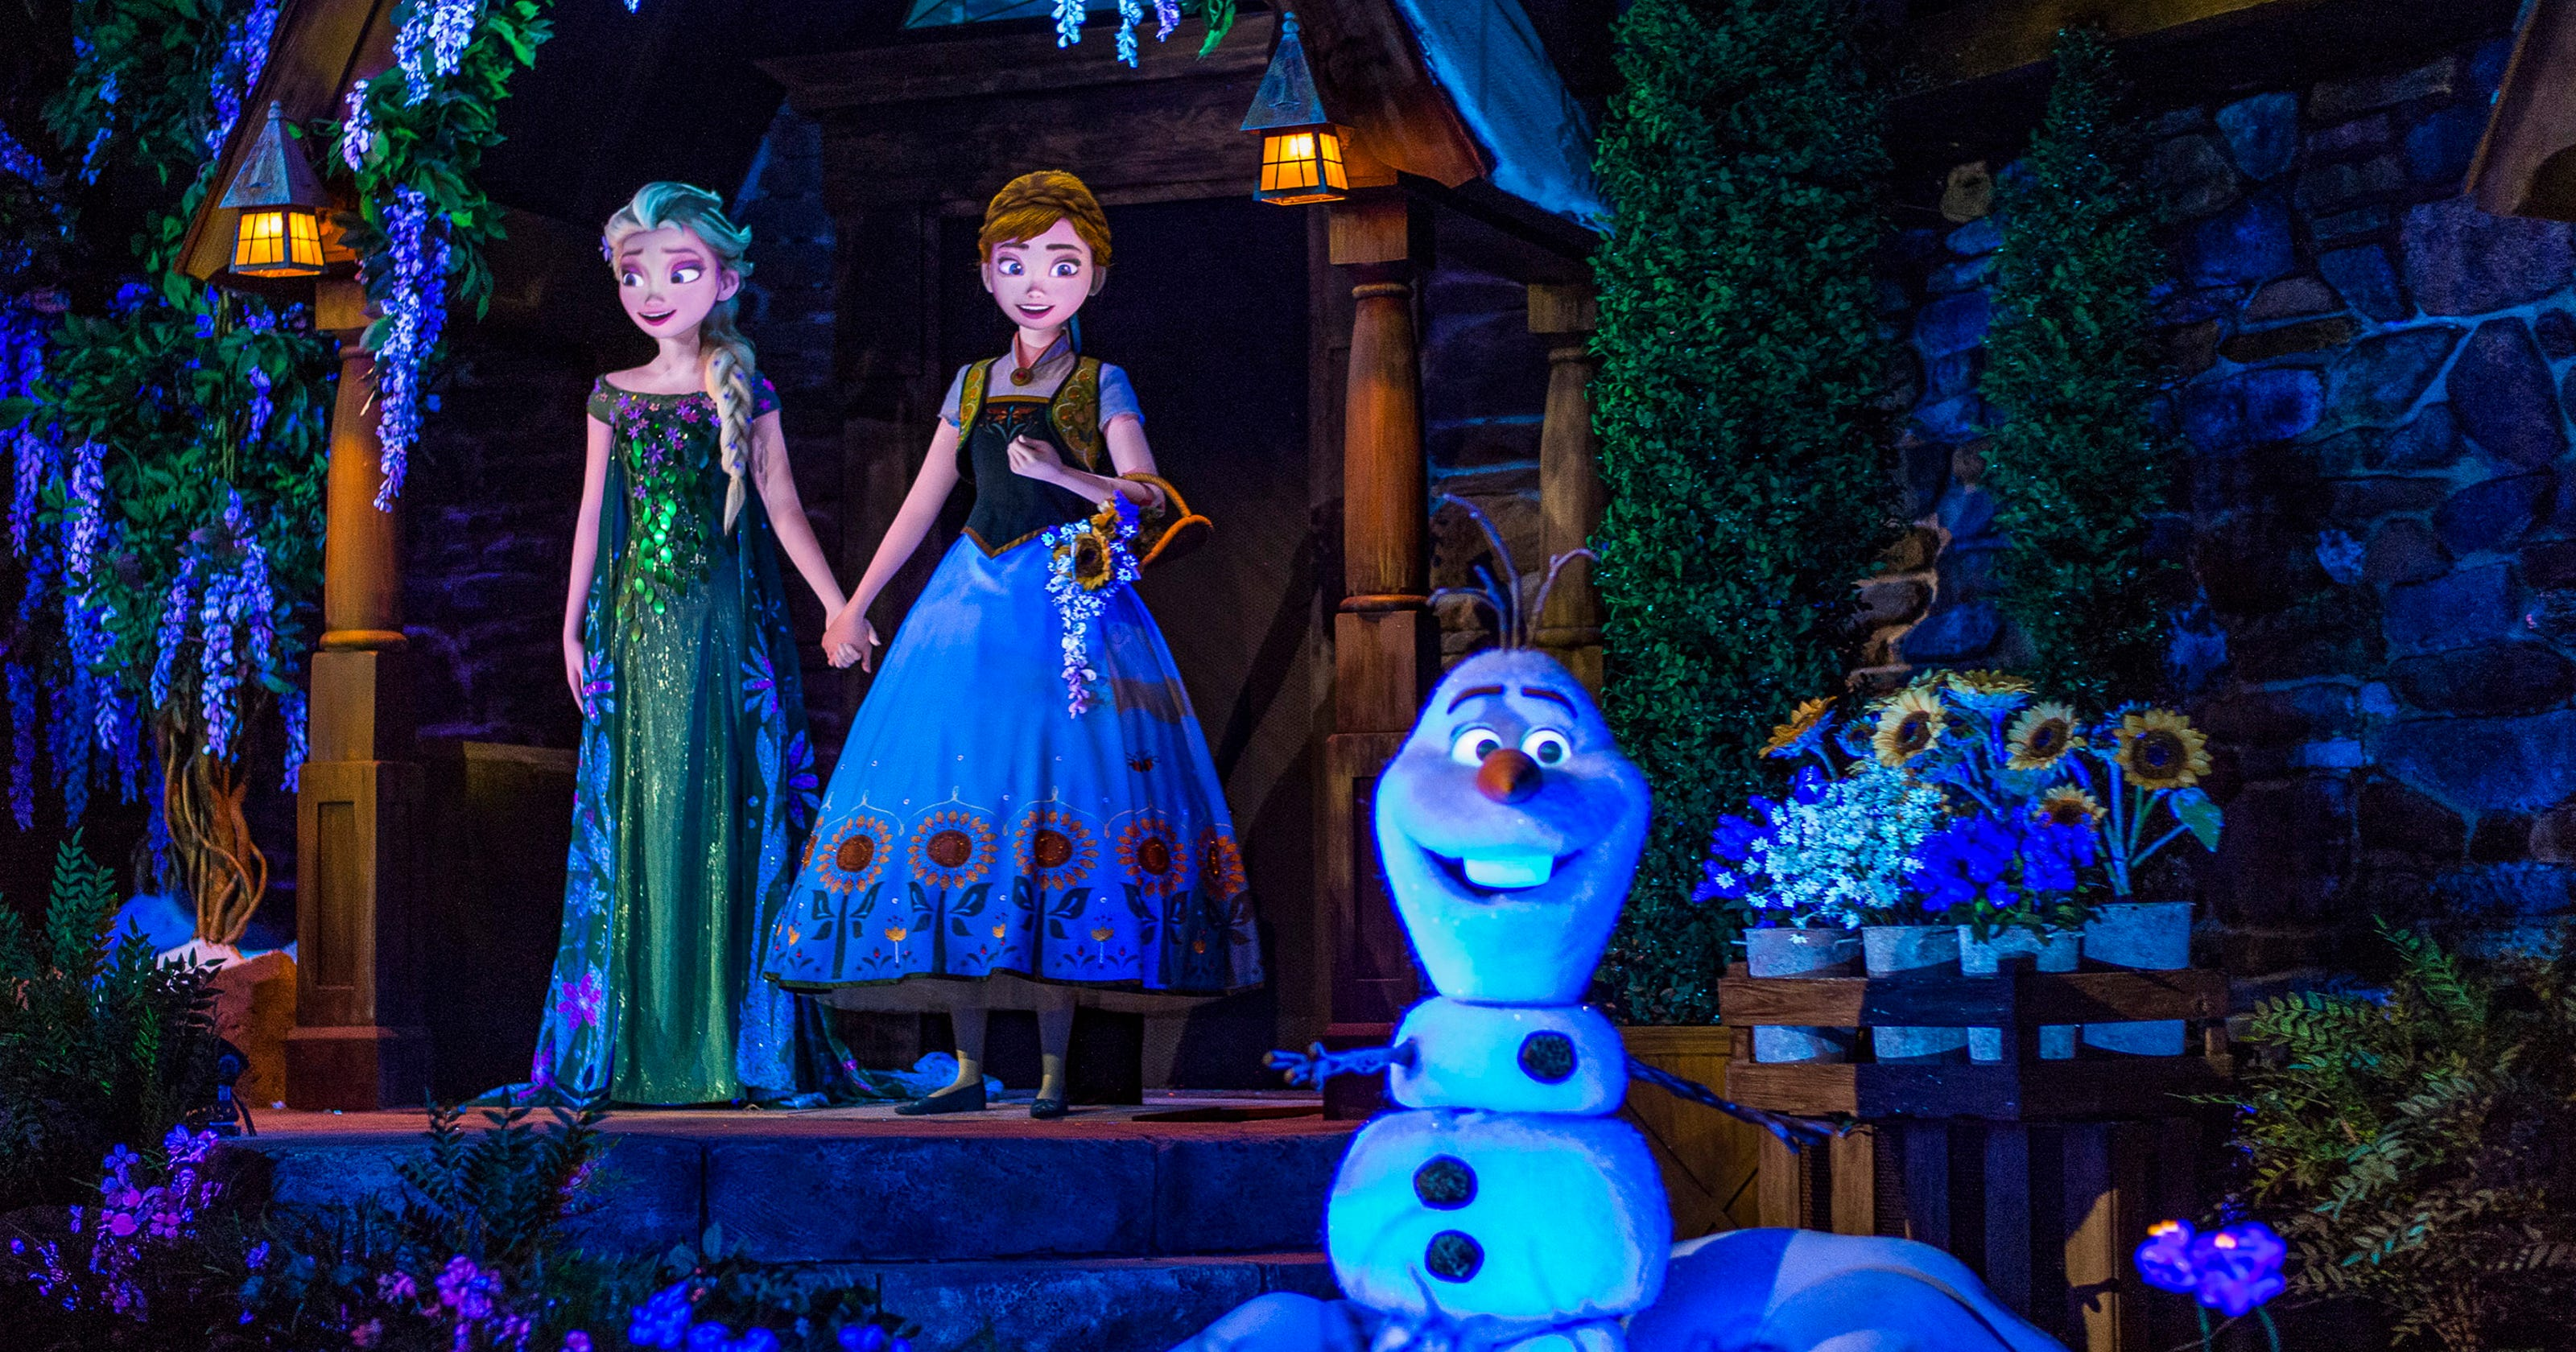 The Frozen Storm Rages On At Disney World And Disneyland